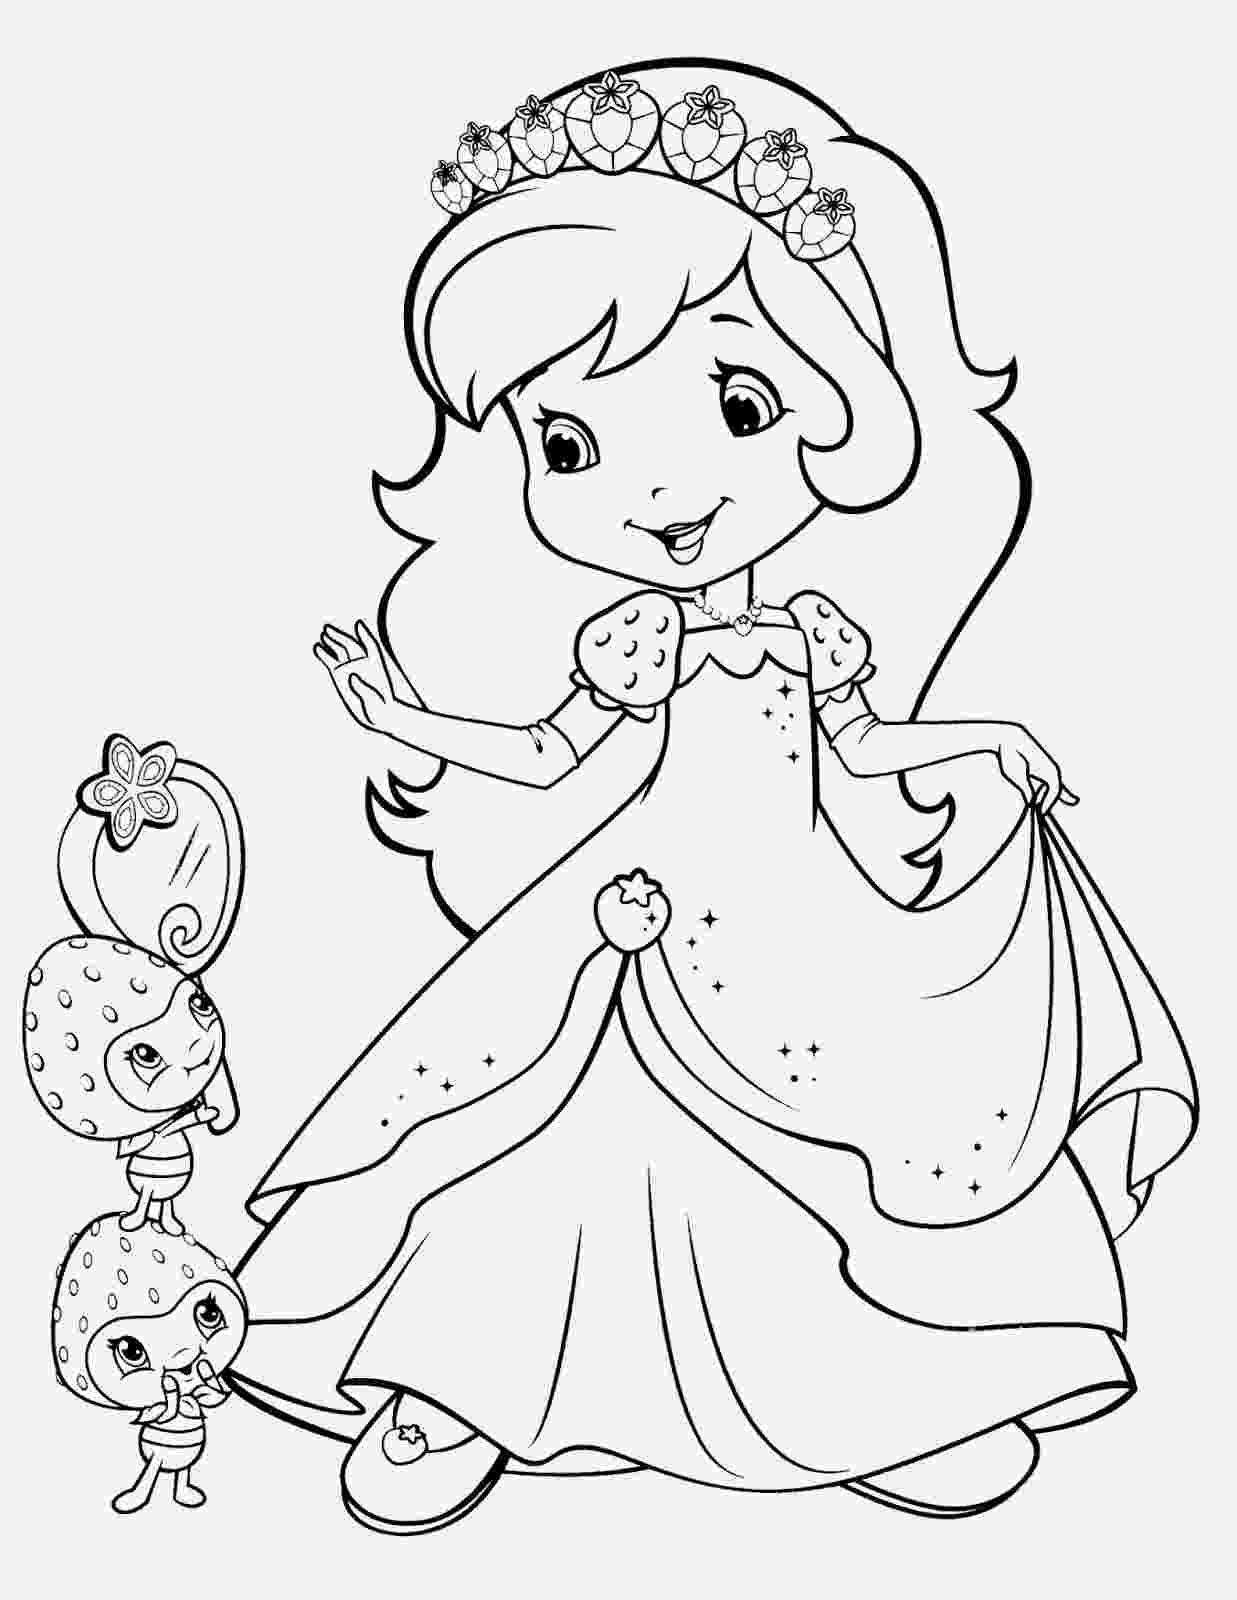 strawberry shortcake princess coloring pages strawberry shortcake princess coloring pages timeless pages coloring shortcake strawberry princess